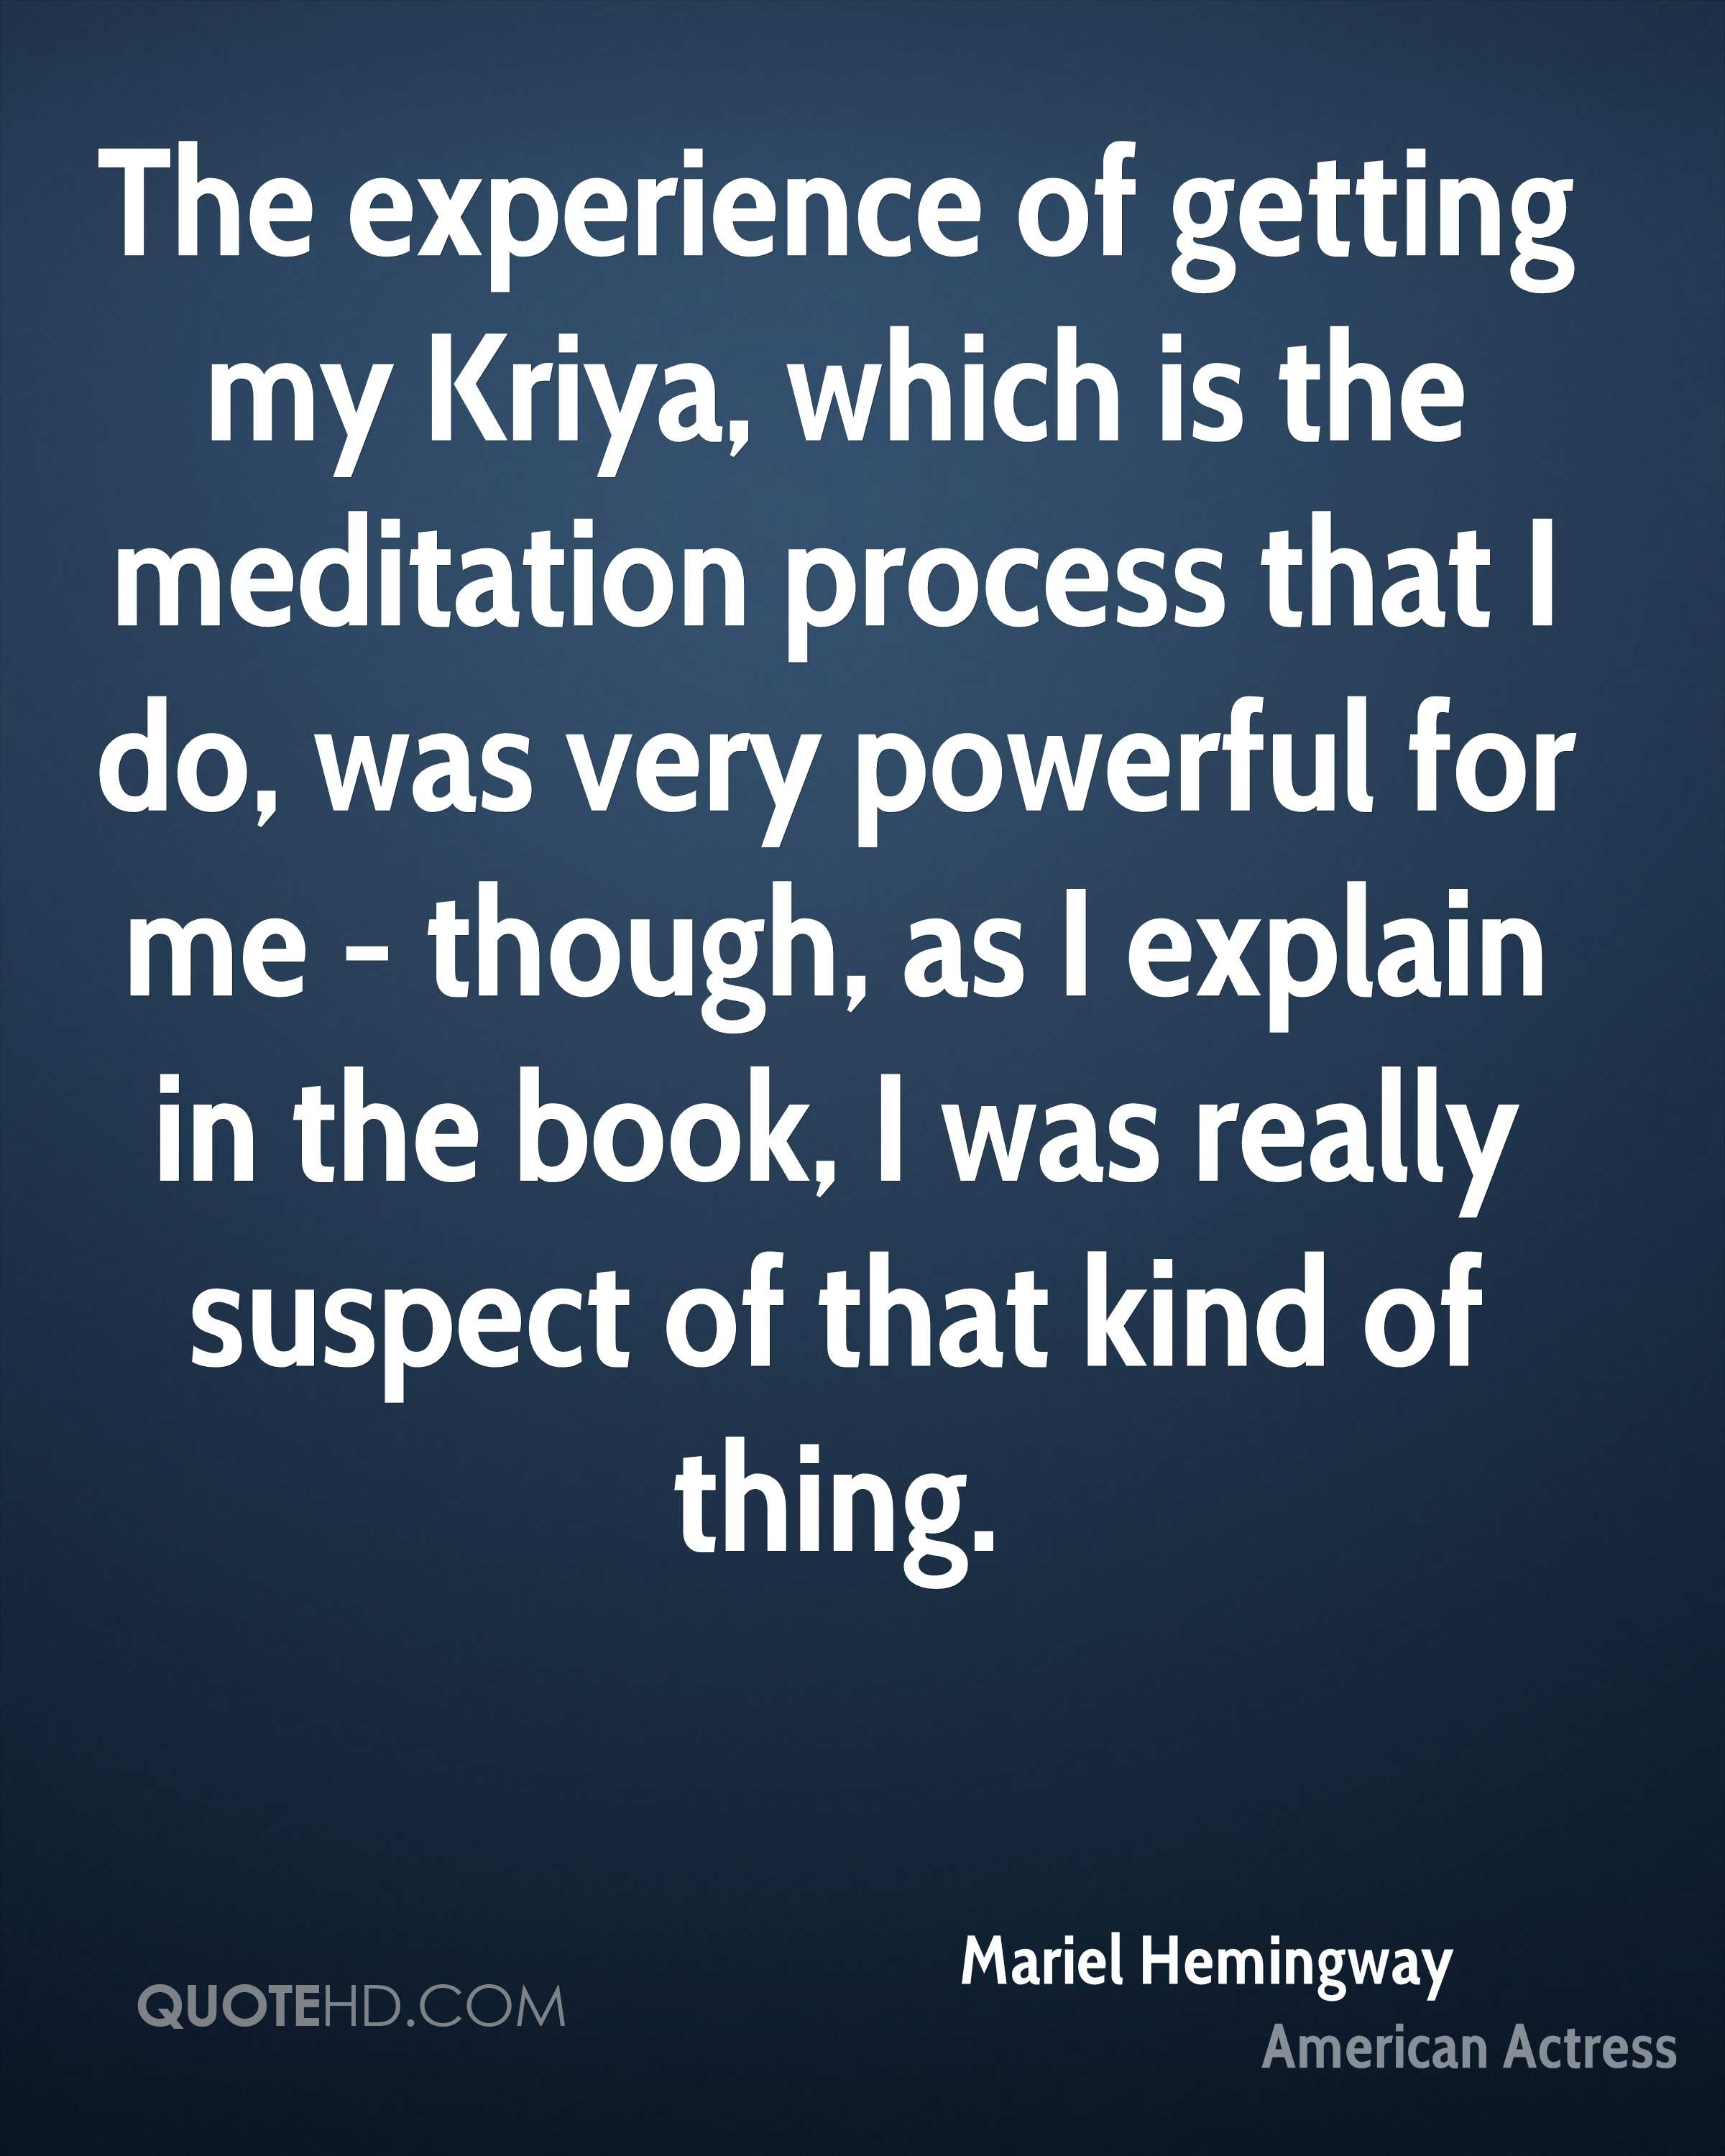 The experience of getting my Kriya, which is the meditation process that I do, was very powerful for me - though, as I explain in the book, I was really suspect of that kind of thing.